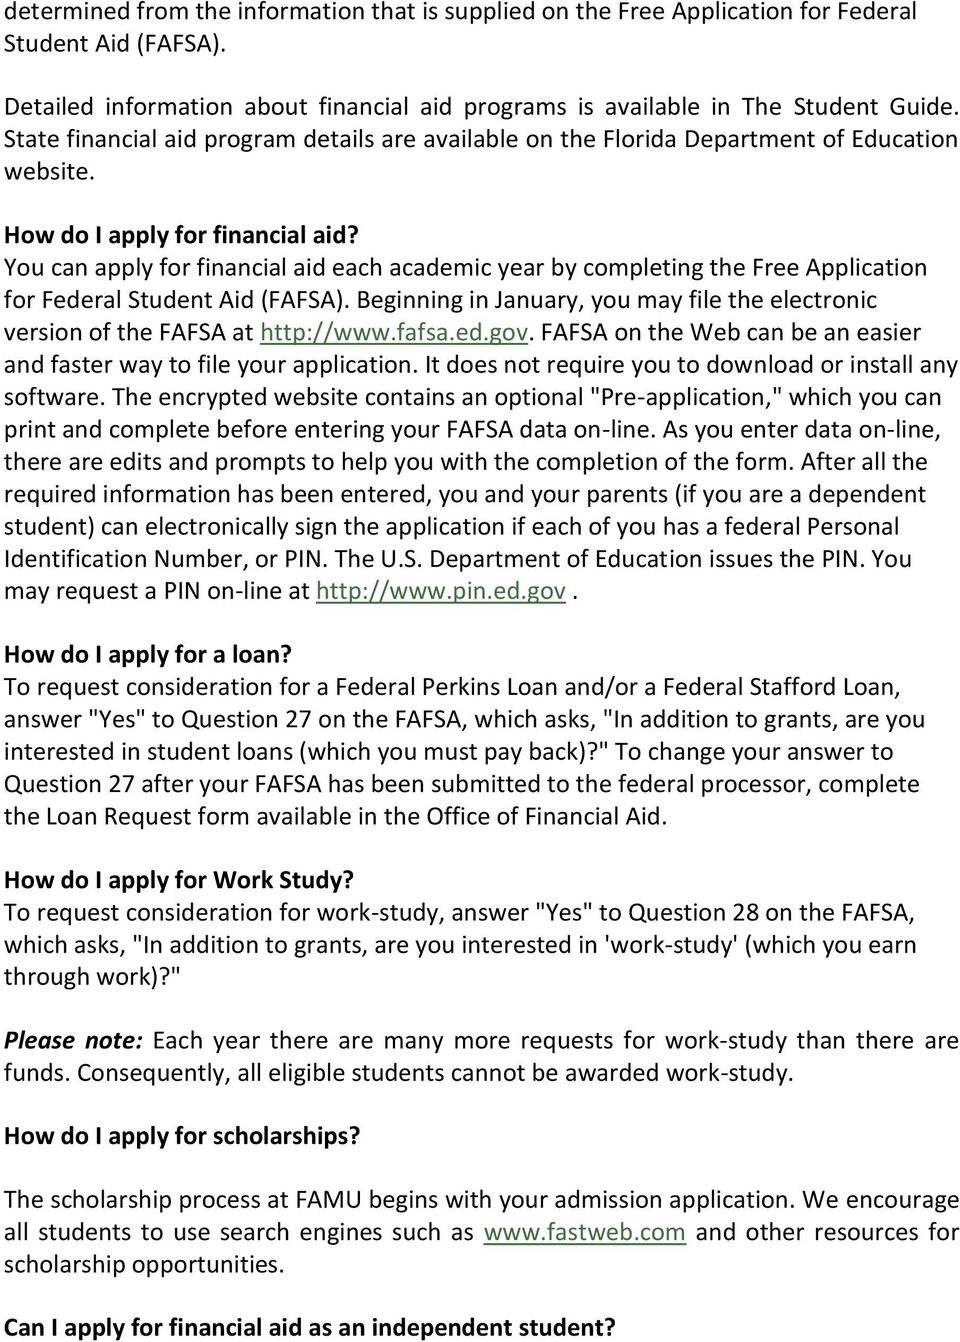 ferpa form famu  FREQUENTLY ASKED QUESTIONS & ANSWERS - PDF Free Download